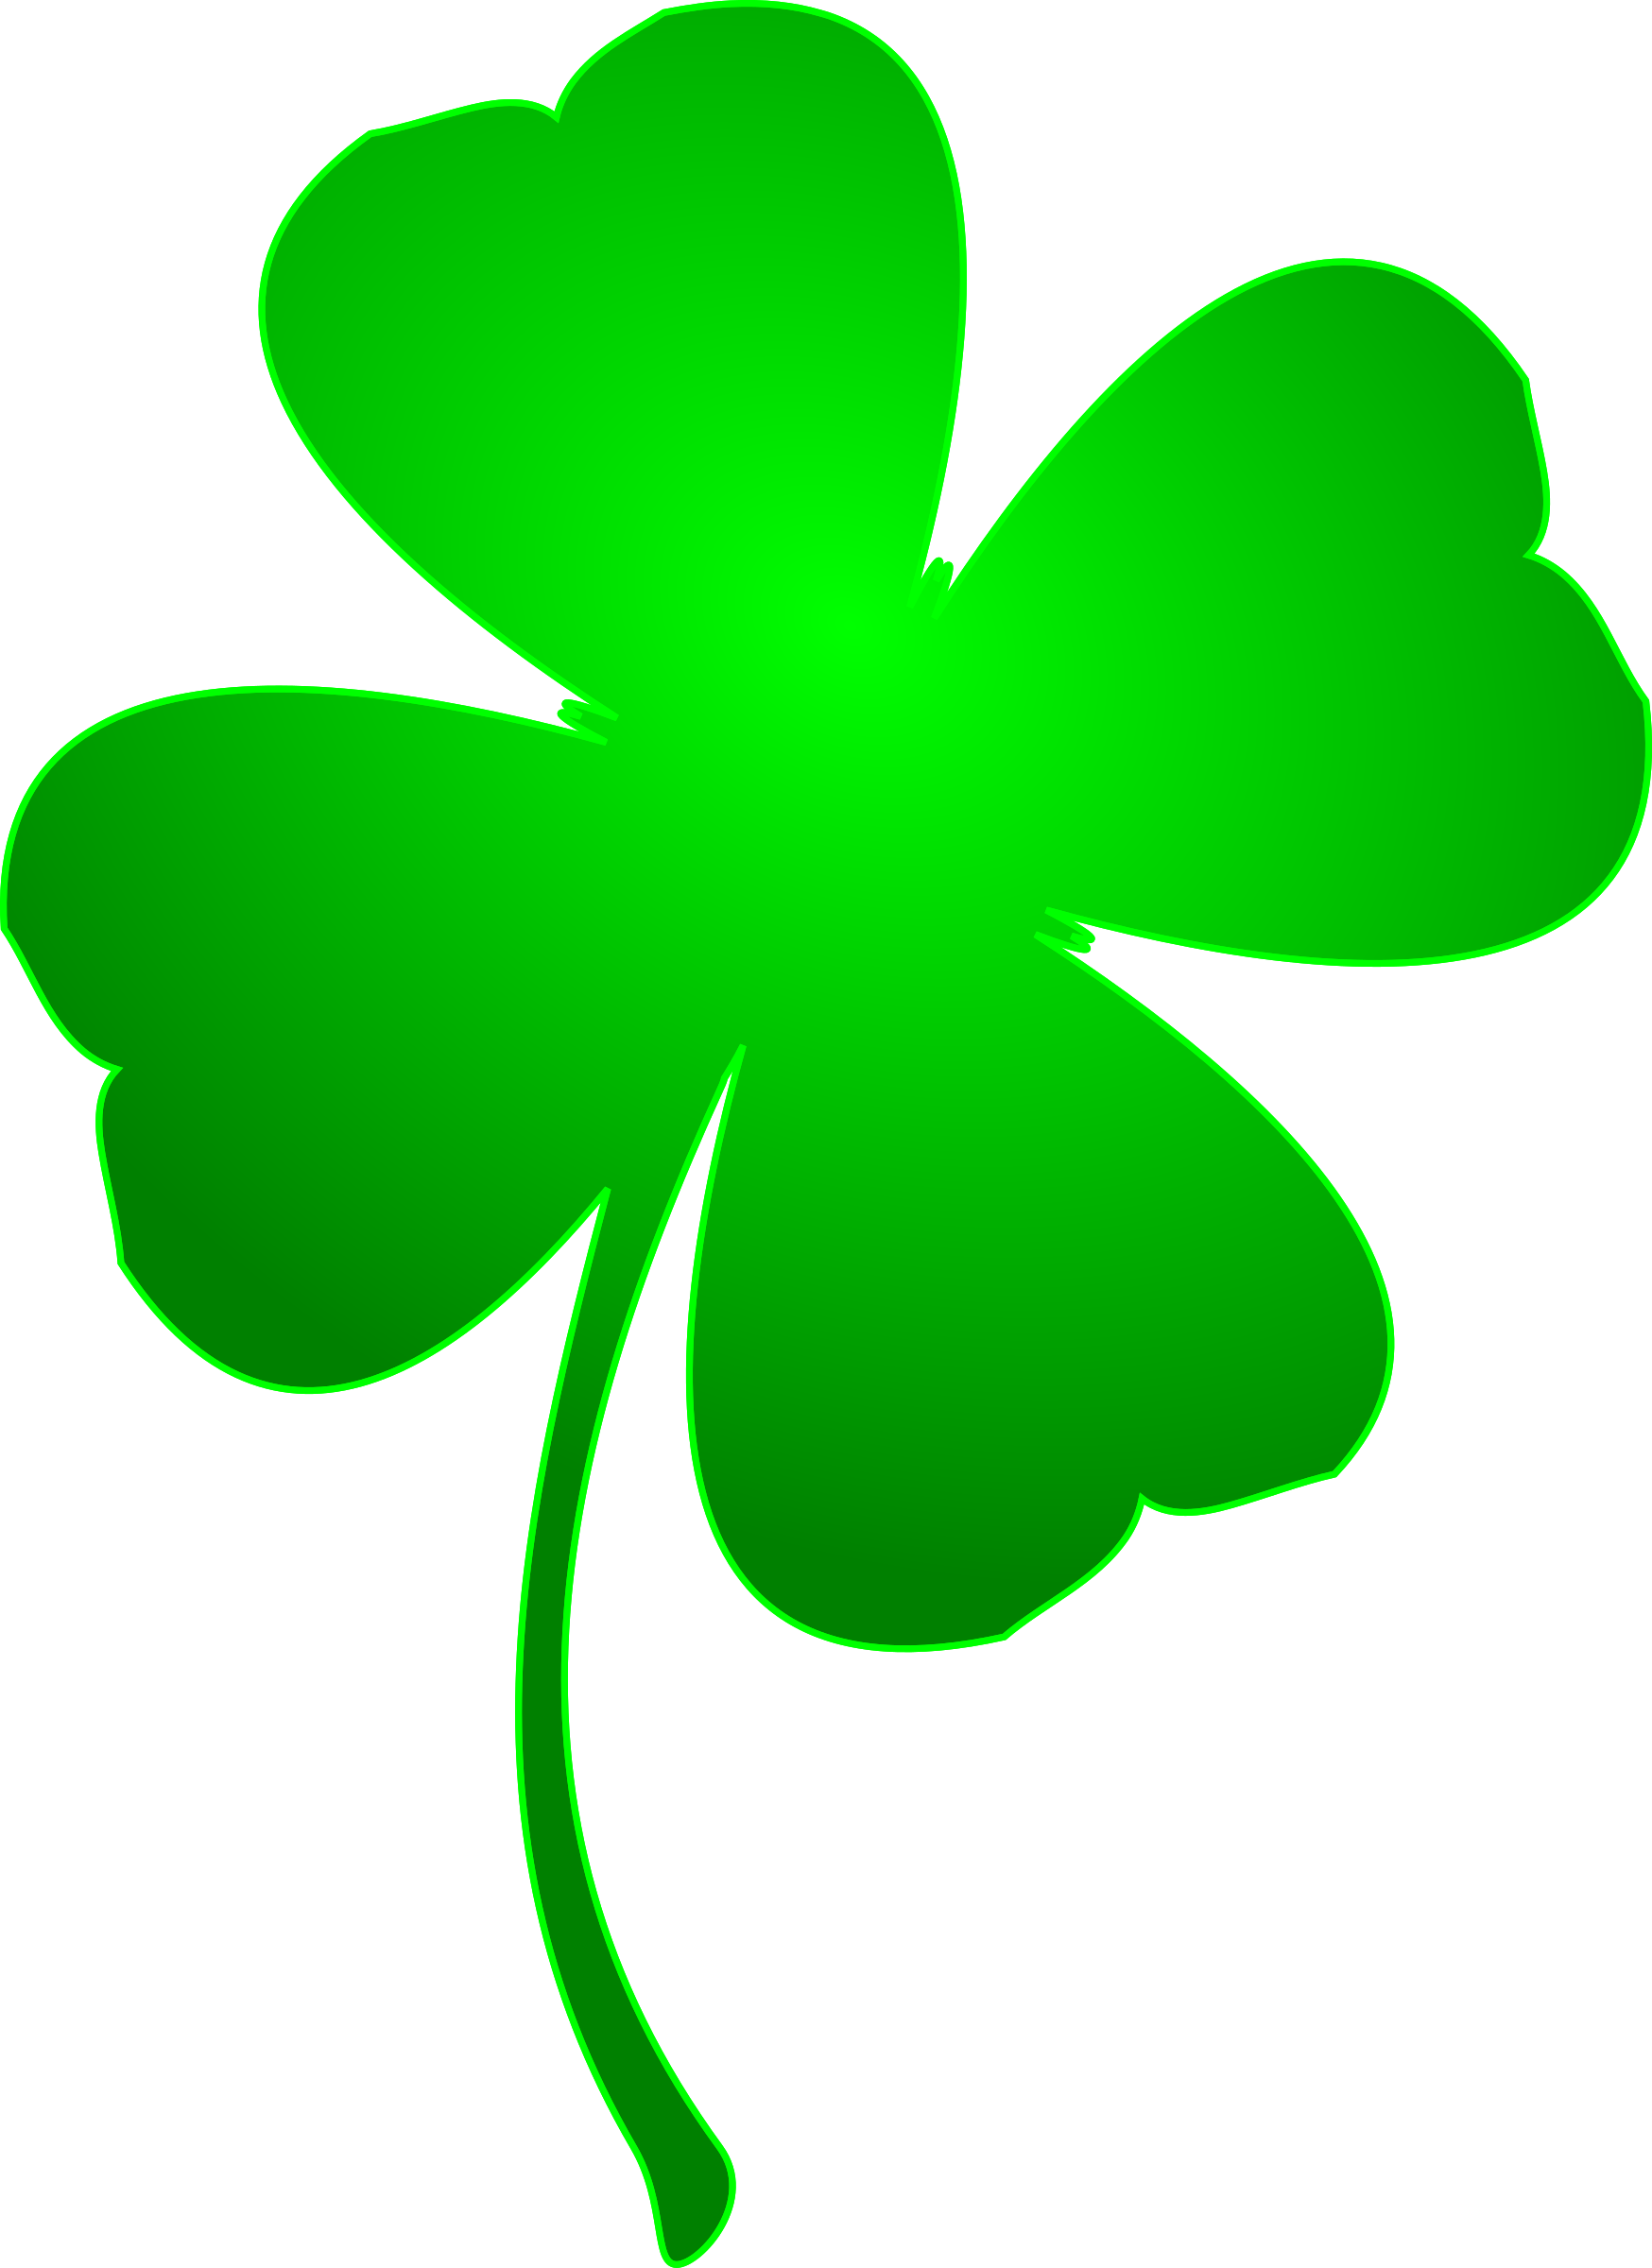 clip art freeuse stock Luck clipart mini. Irish lucky clover big.